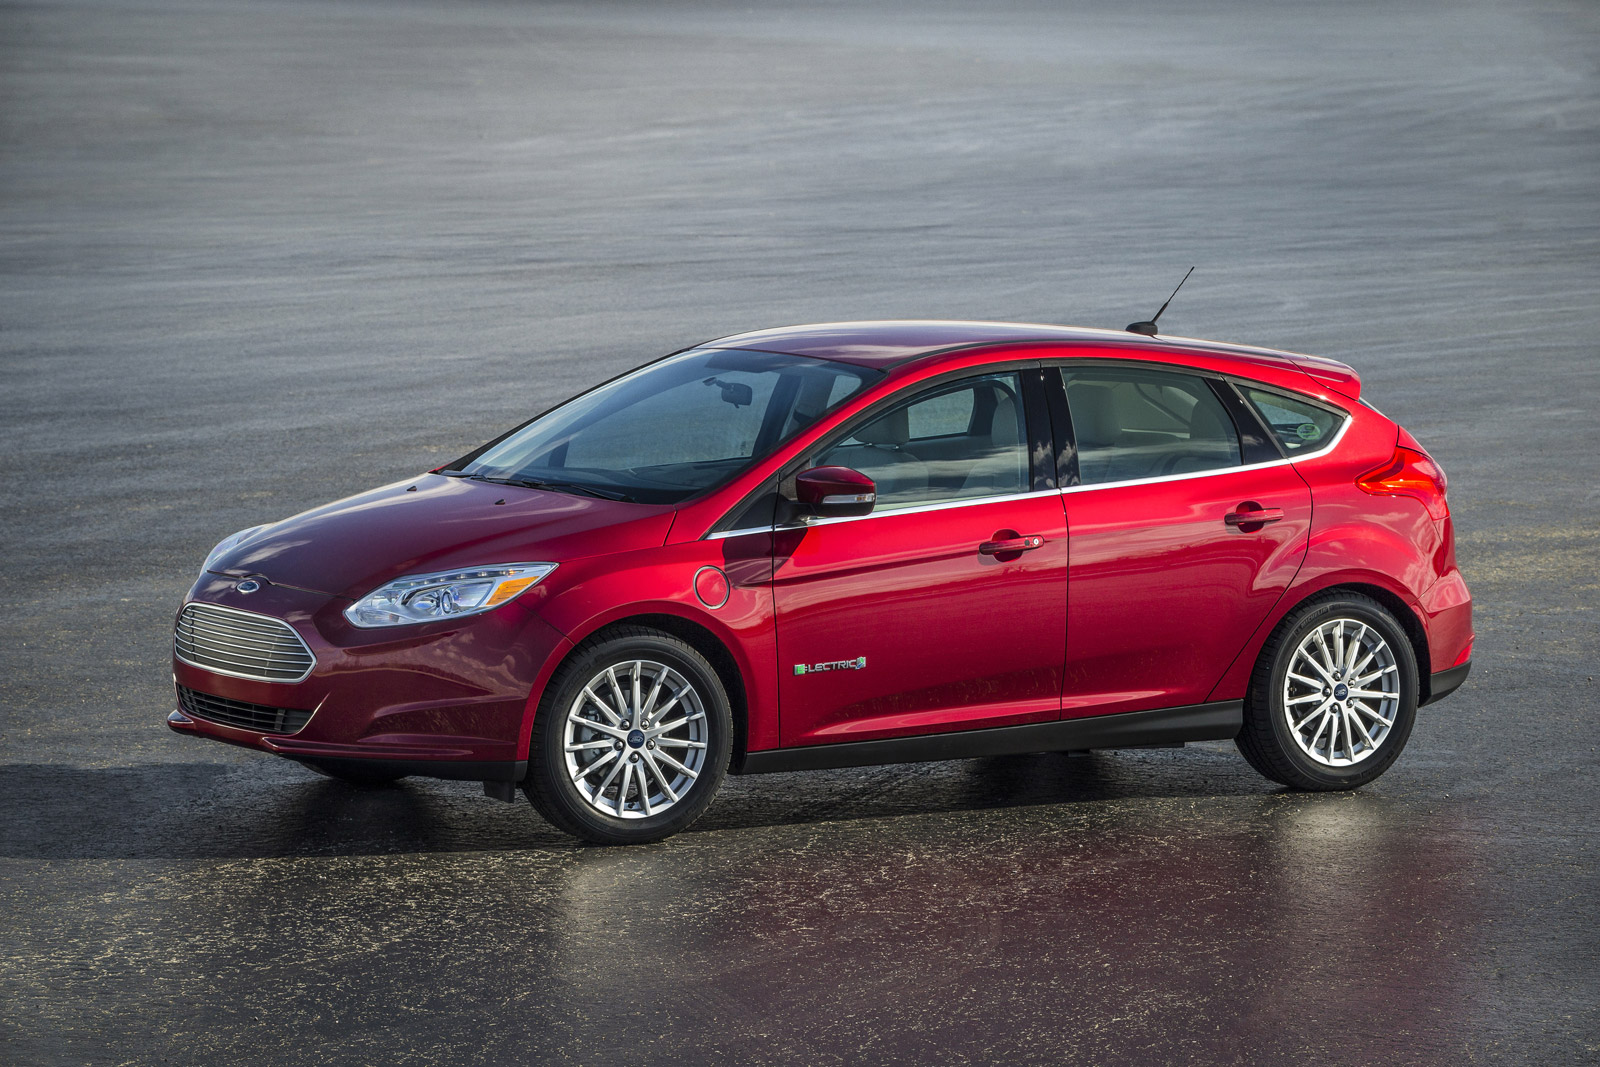 2015 Ford Focus Electric Price Cut To 29995 A 6K Drop Report